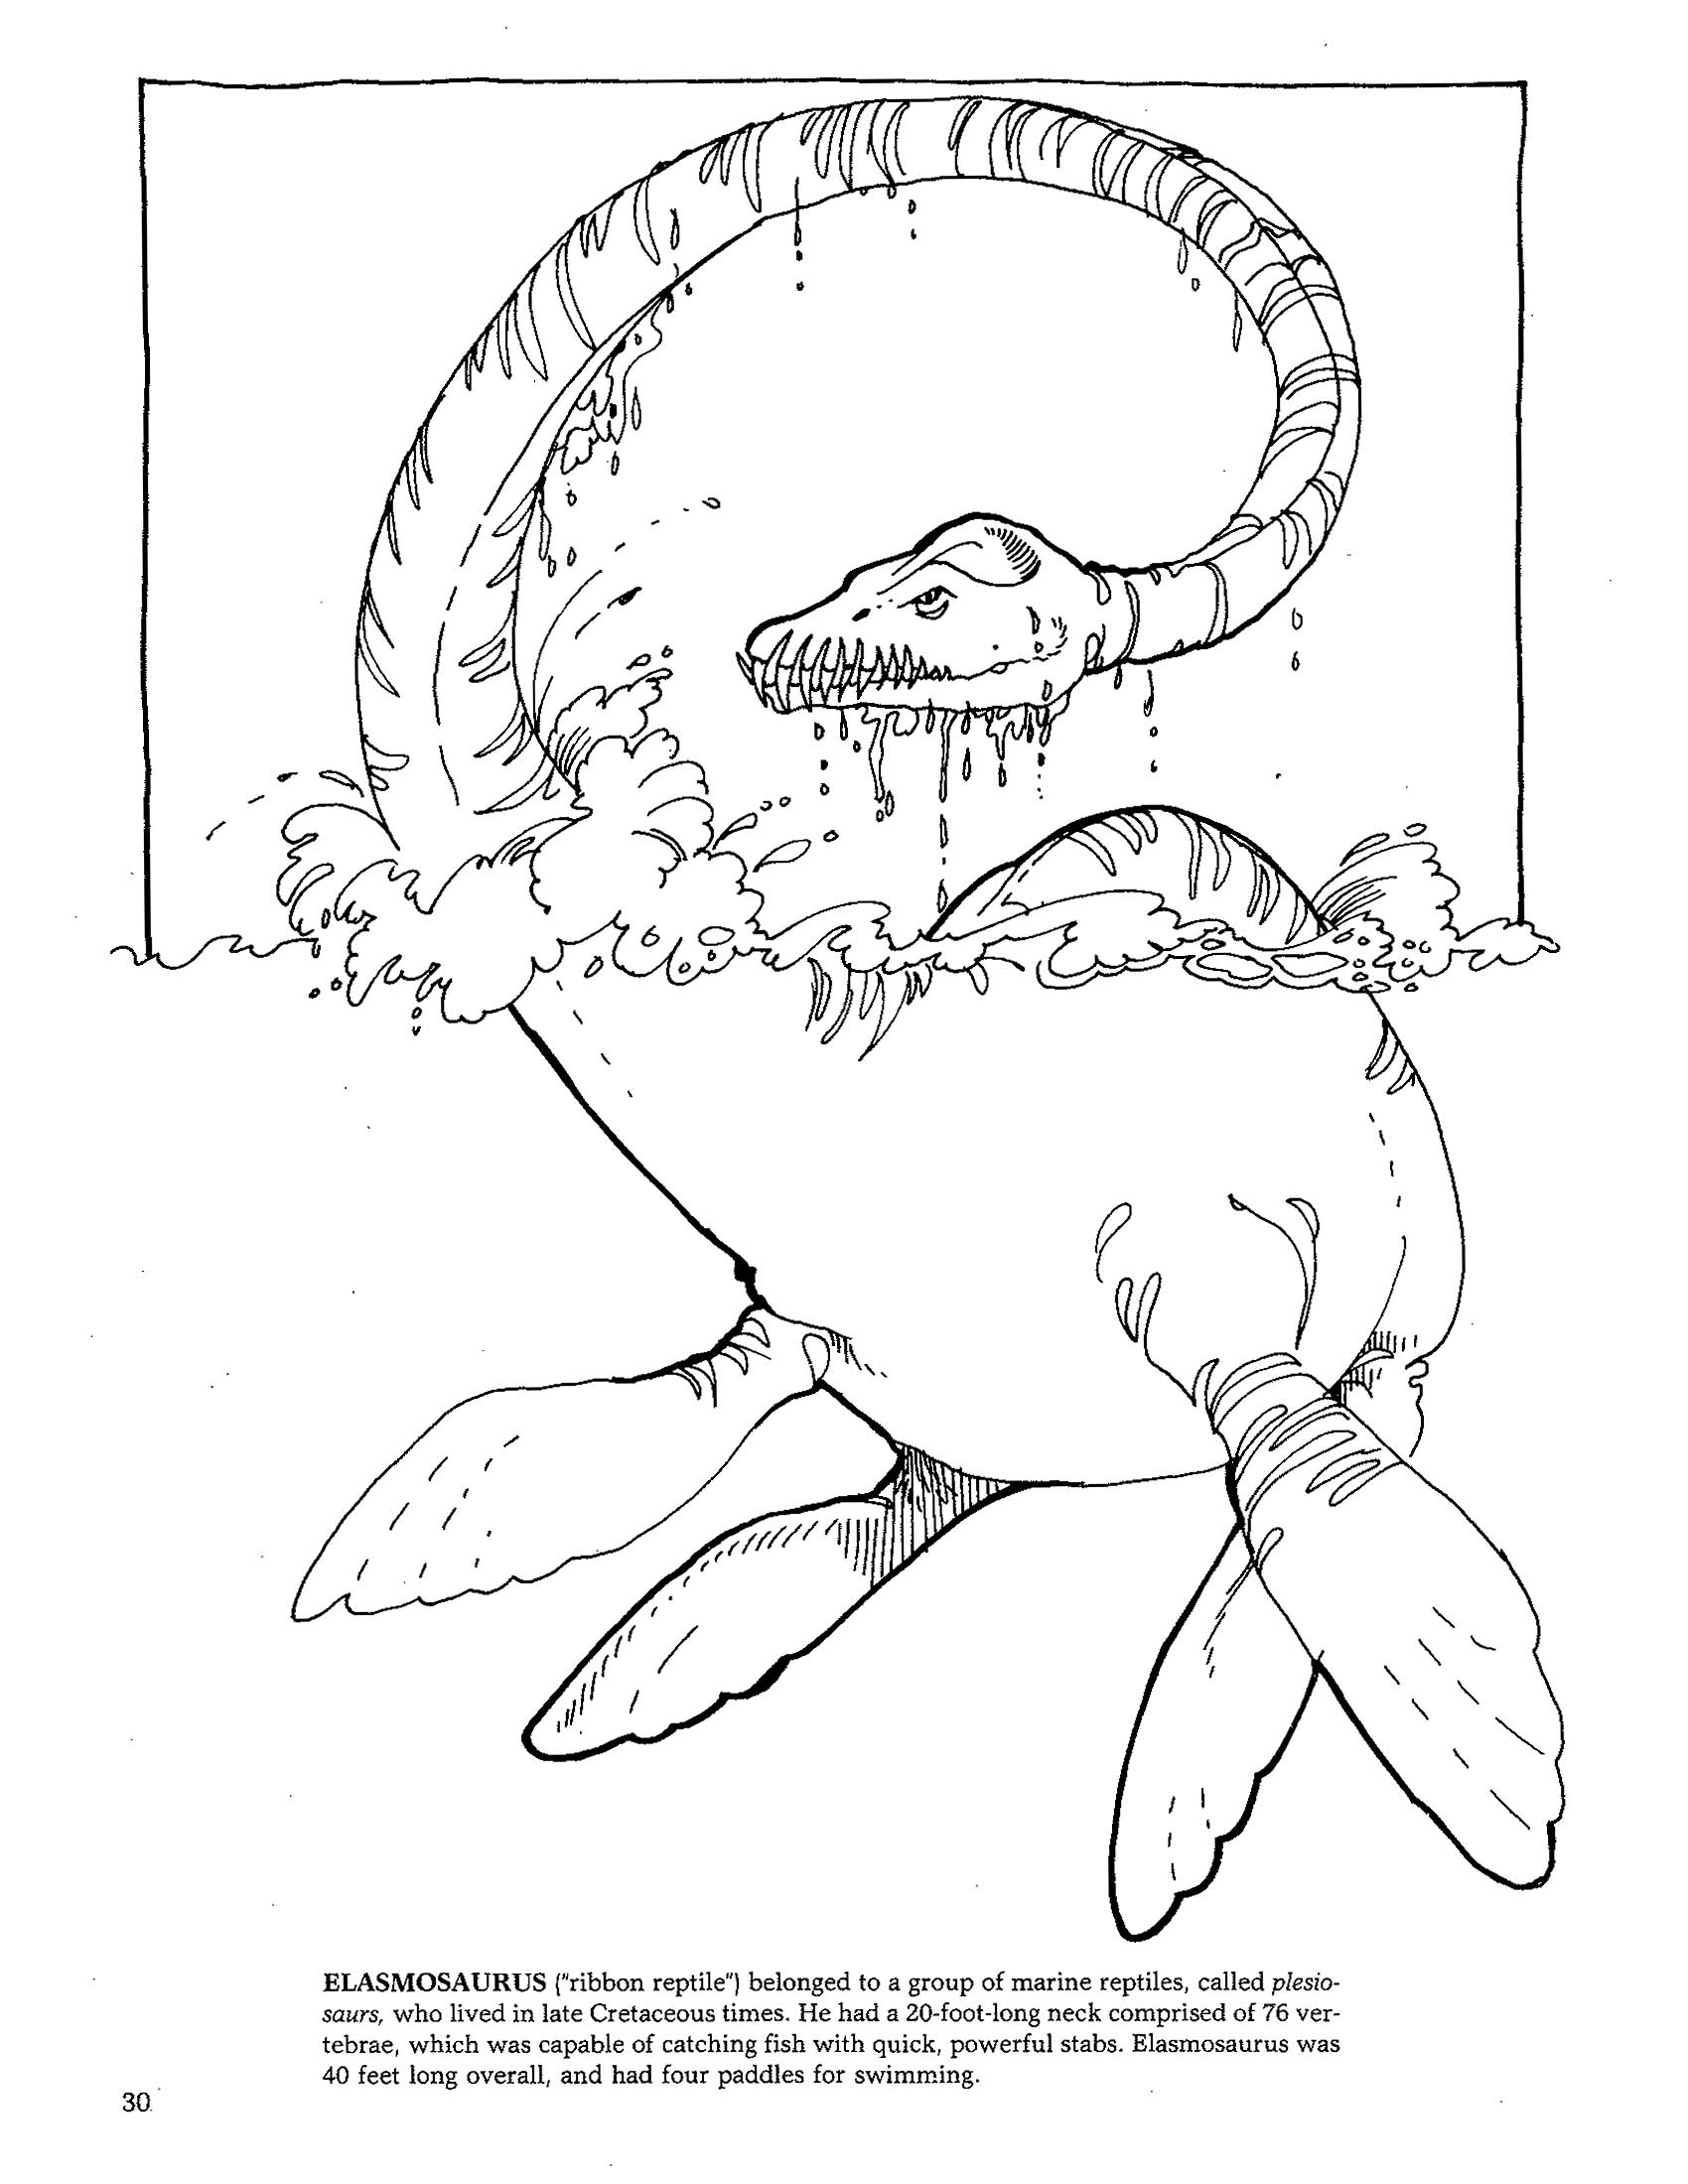 Coloring pages dinosaurs and dragons - Dinosaurs3 Jpg 1700 2200 Check Out This Oldie But Goodie Chidren Coloring Pages Print Or Save Import To Paint Pinterest Adult Coloring